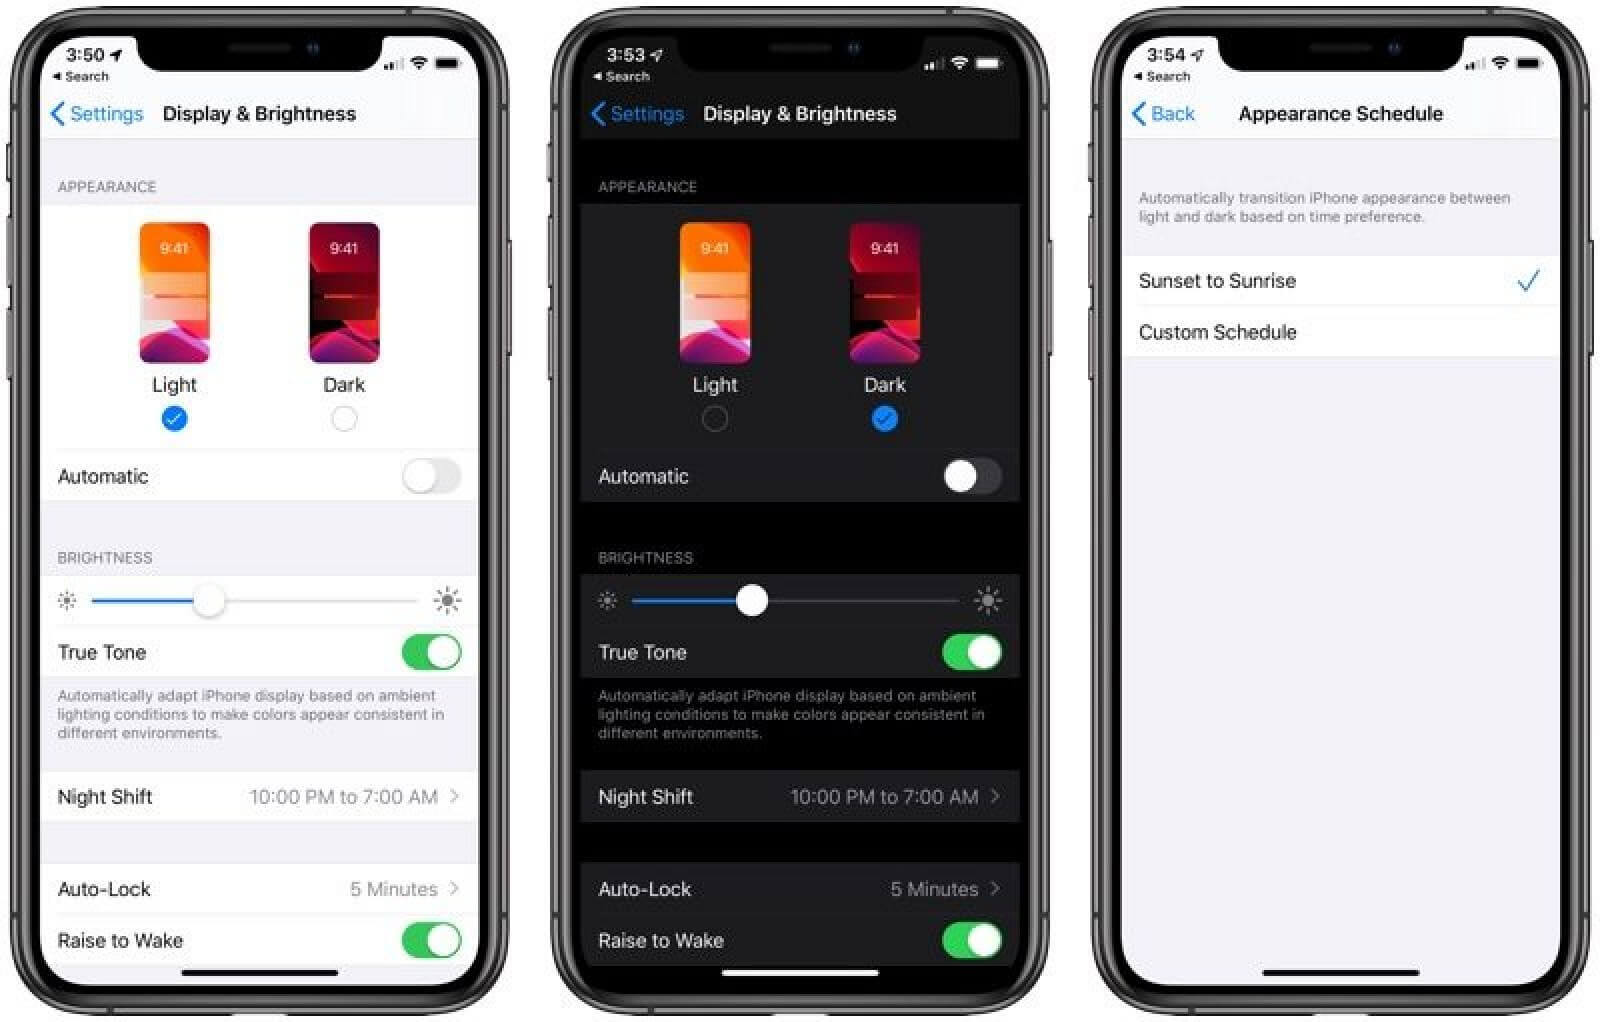 appear in the iOS 13.3 source code